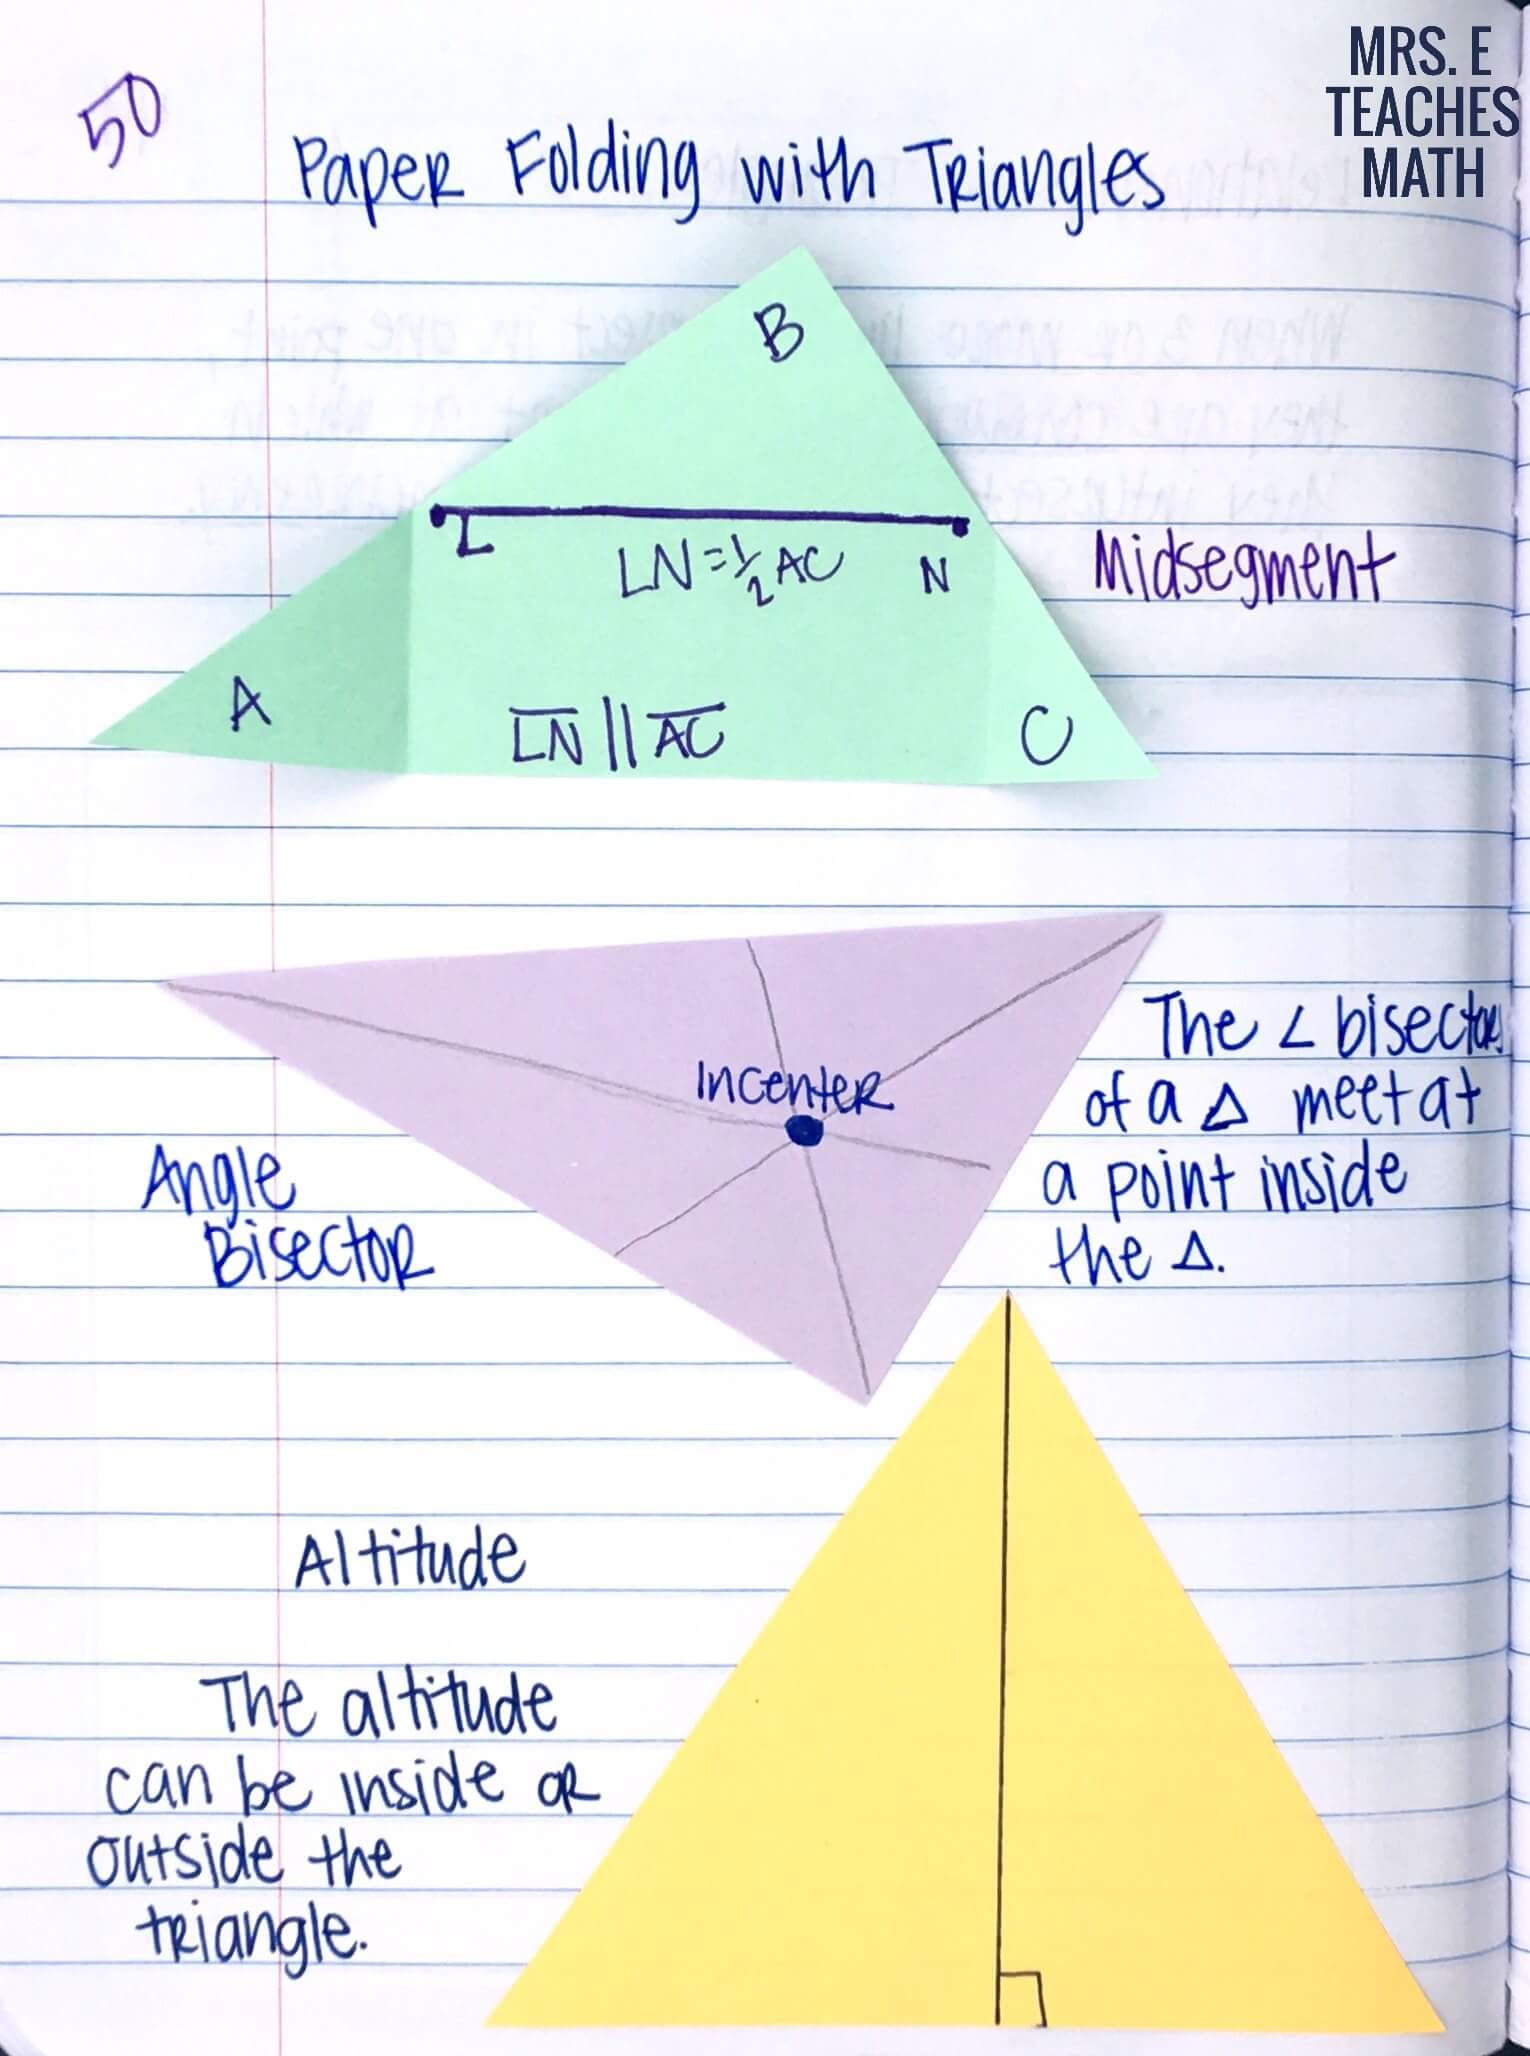 Relationships In Triangles Inb Pages Teaching Geometry Geometry High School High School Math